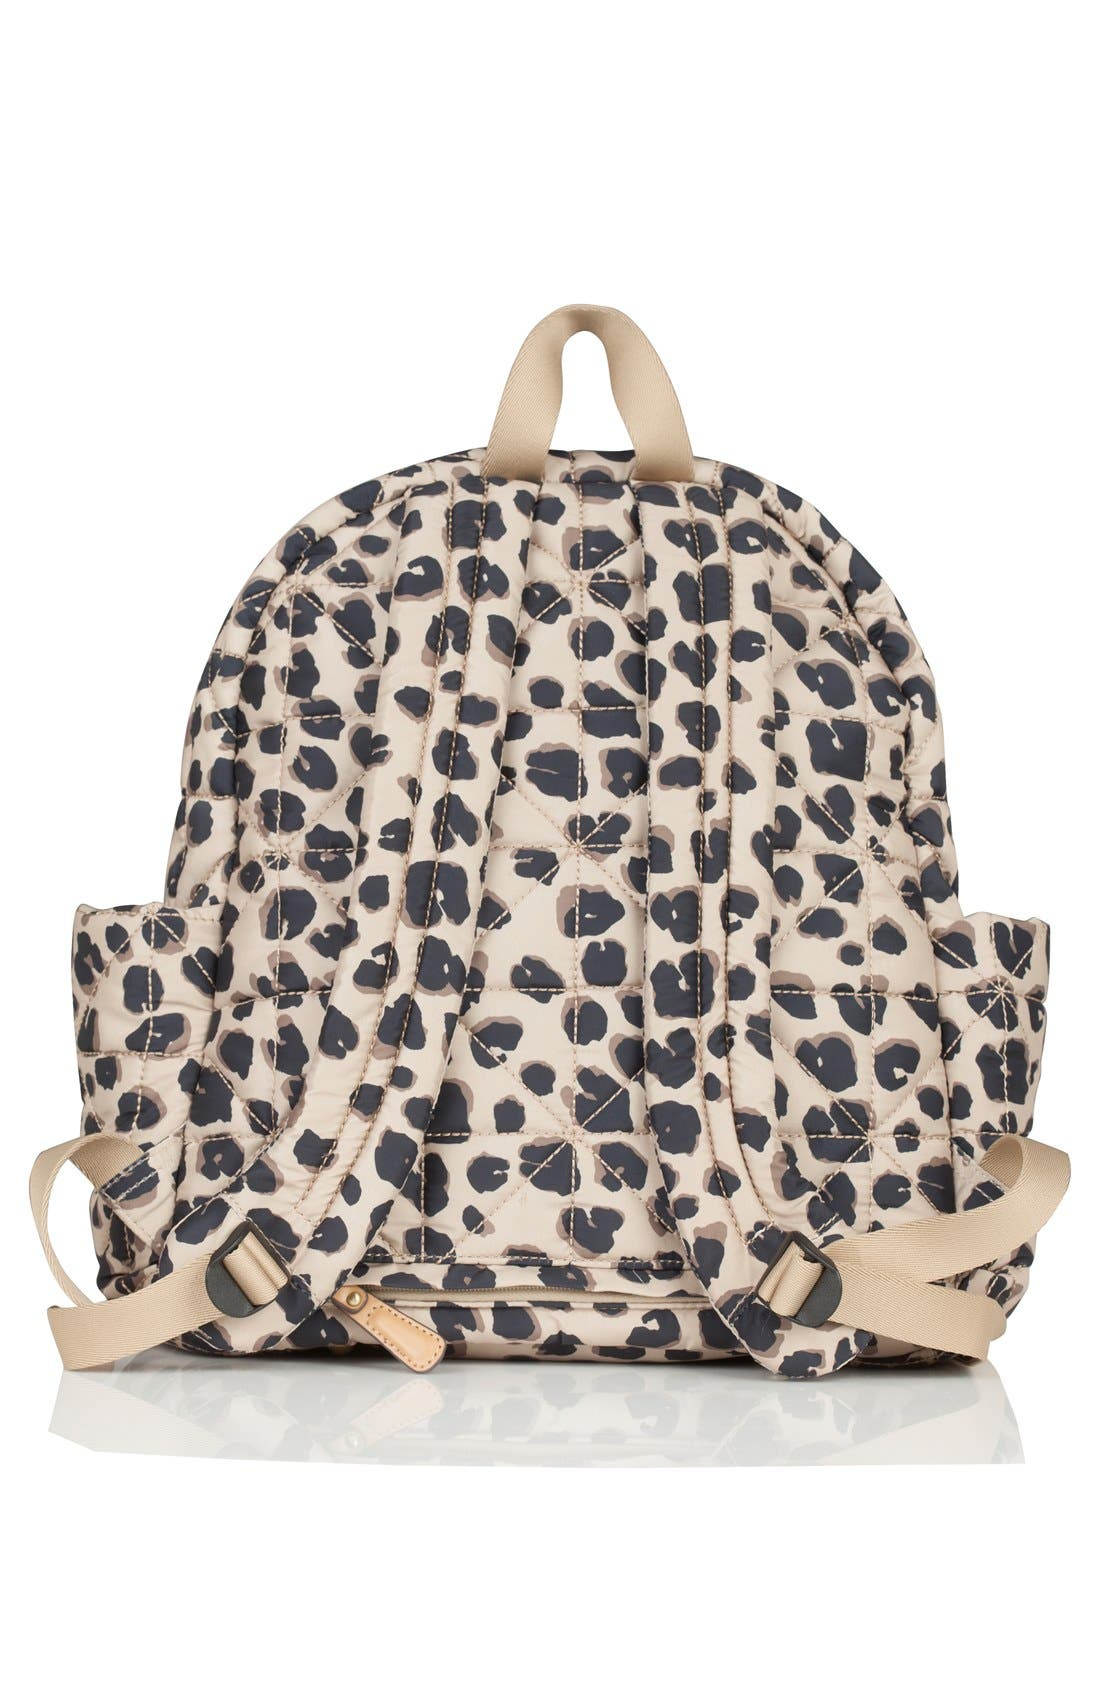 Quilted Water Resistant Nylon Diaper Backpack,                             Alternate thumbnail 7, color,                             LEOPARD PRINT